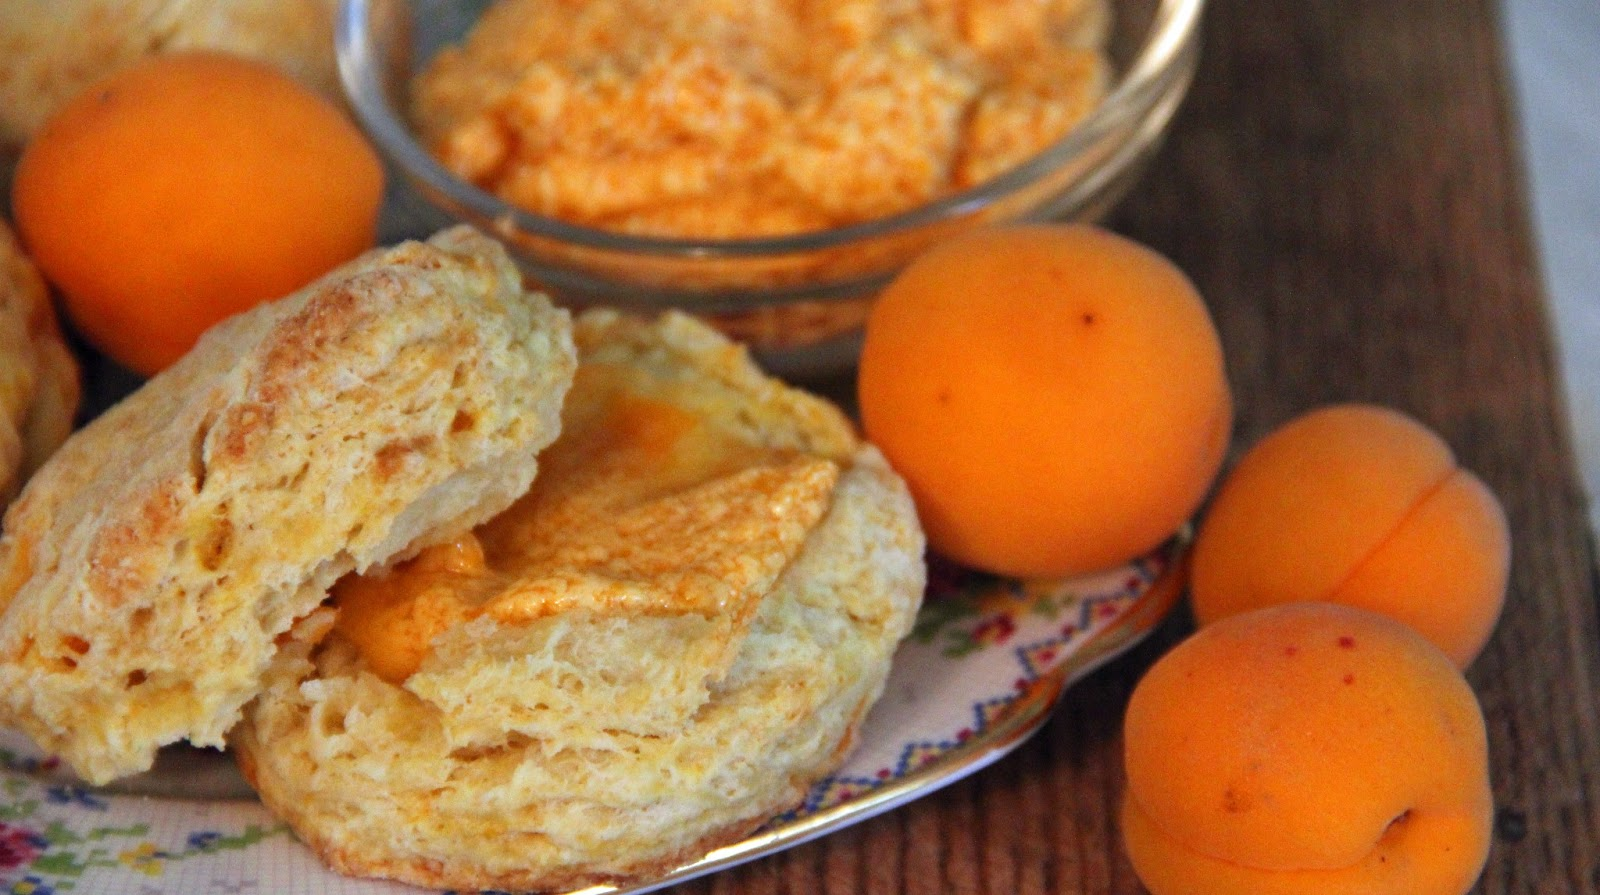 Jo and Sue: Apricot Scones with Apricot Honey Butter